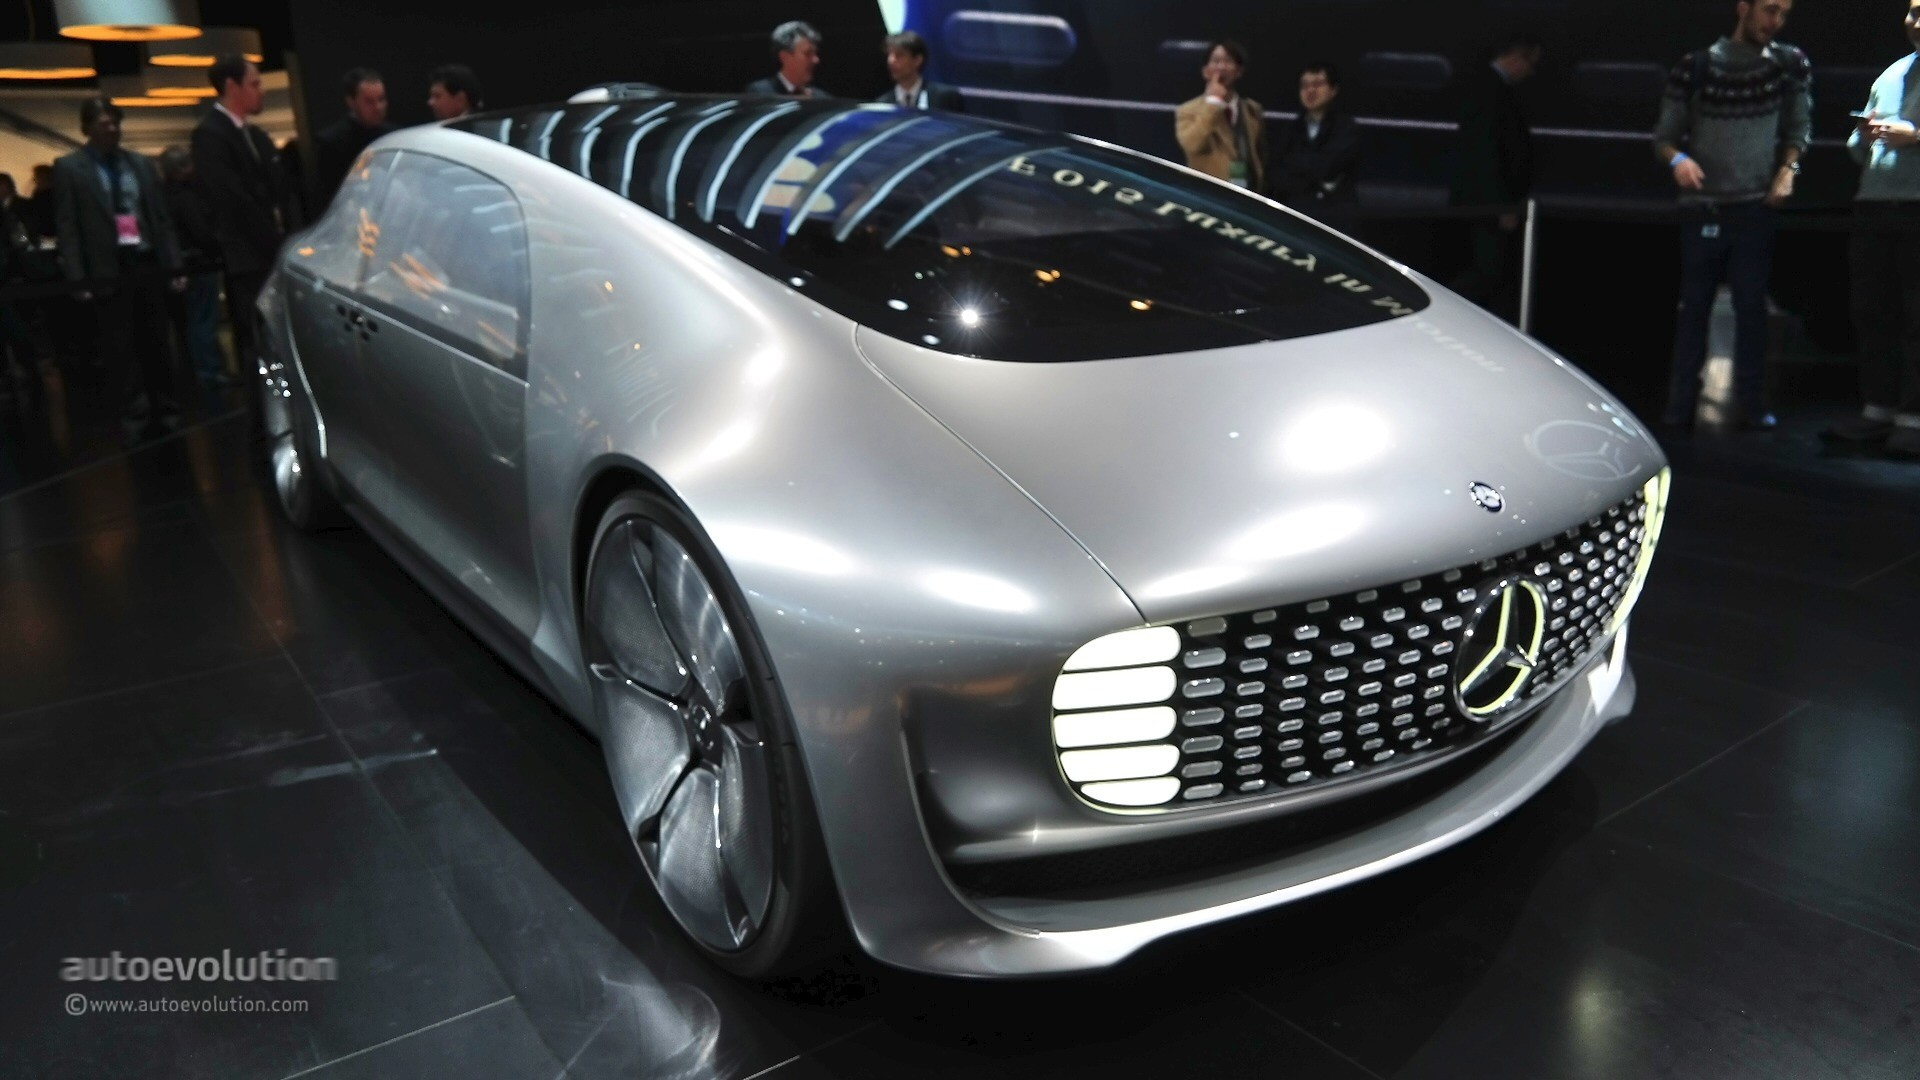 Mercedes benz f 015 concept previews the future at 2015 for Mercedes benz f